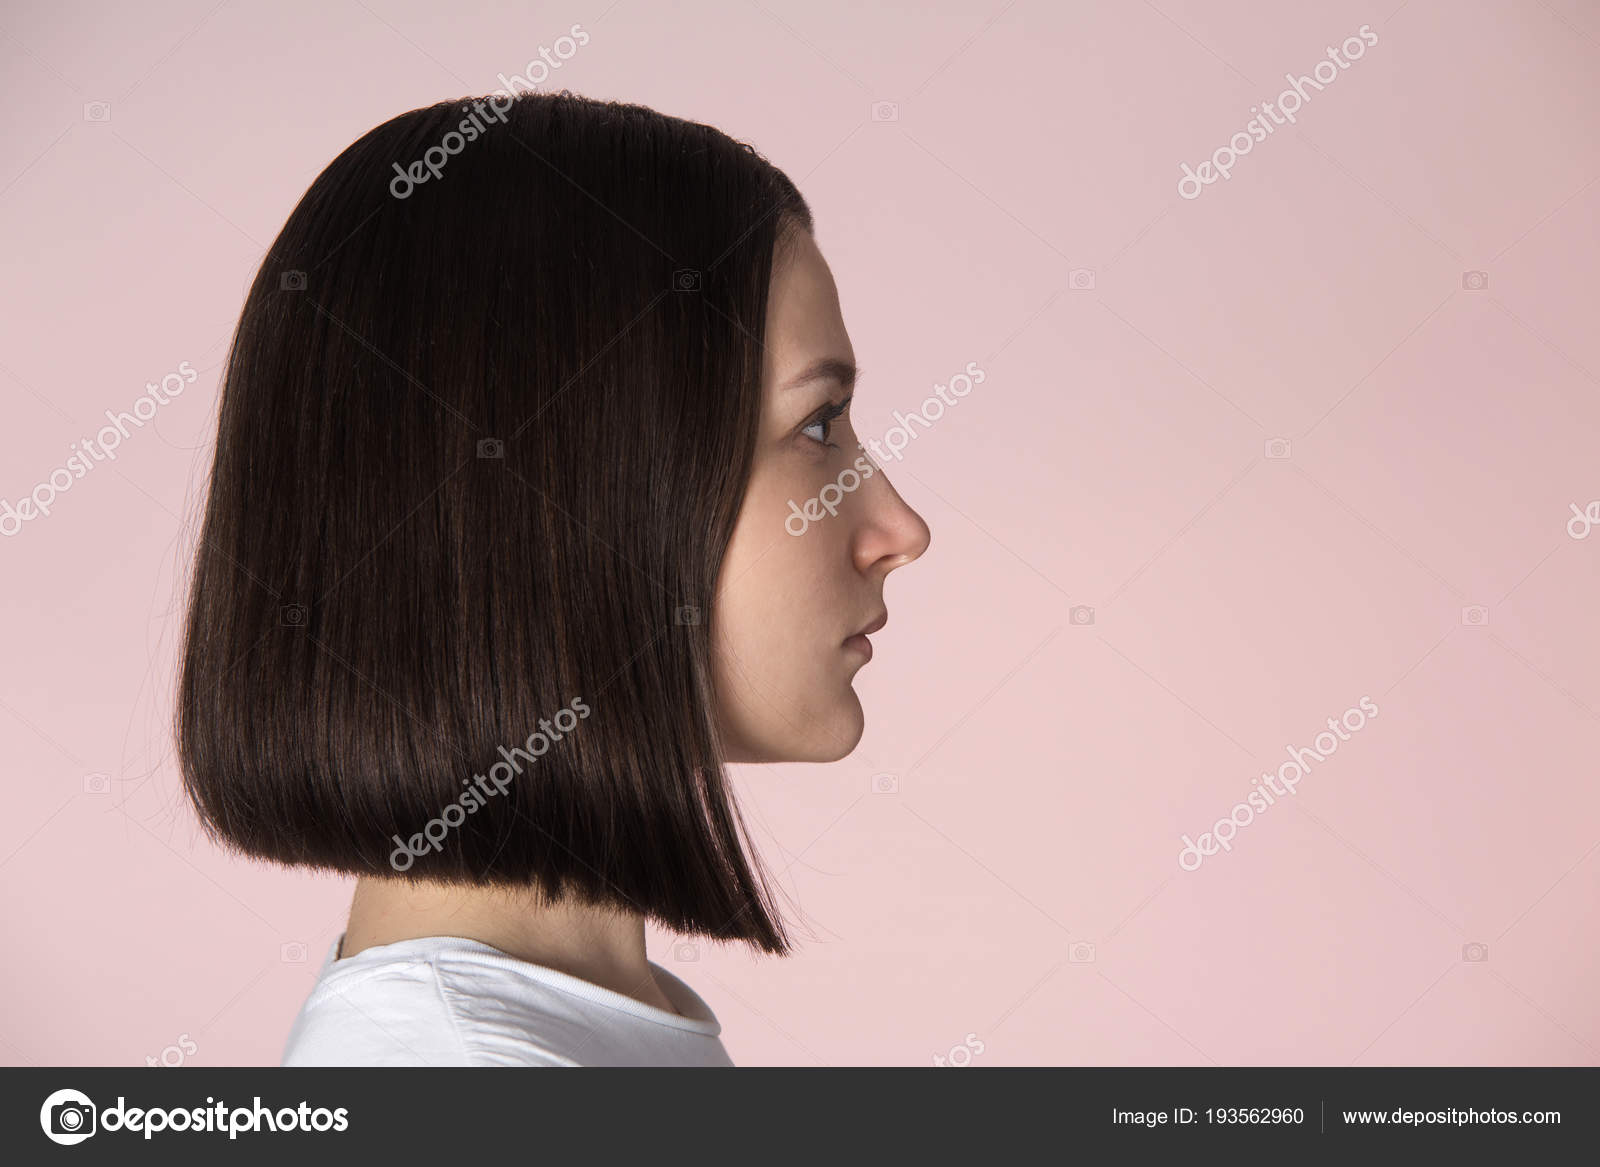 Girl With Blunt Bob Hairstyle Stock Photo C Alex Ugalek 193562960